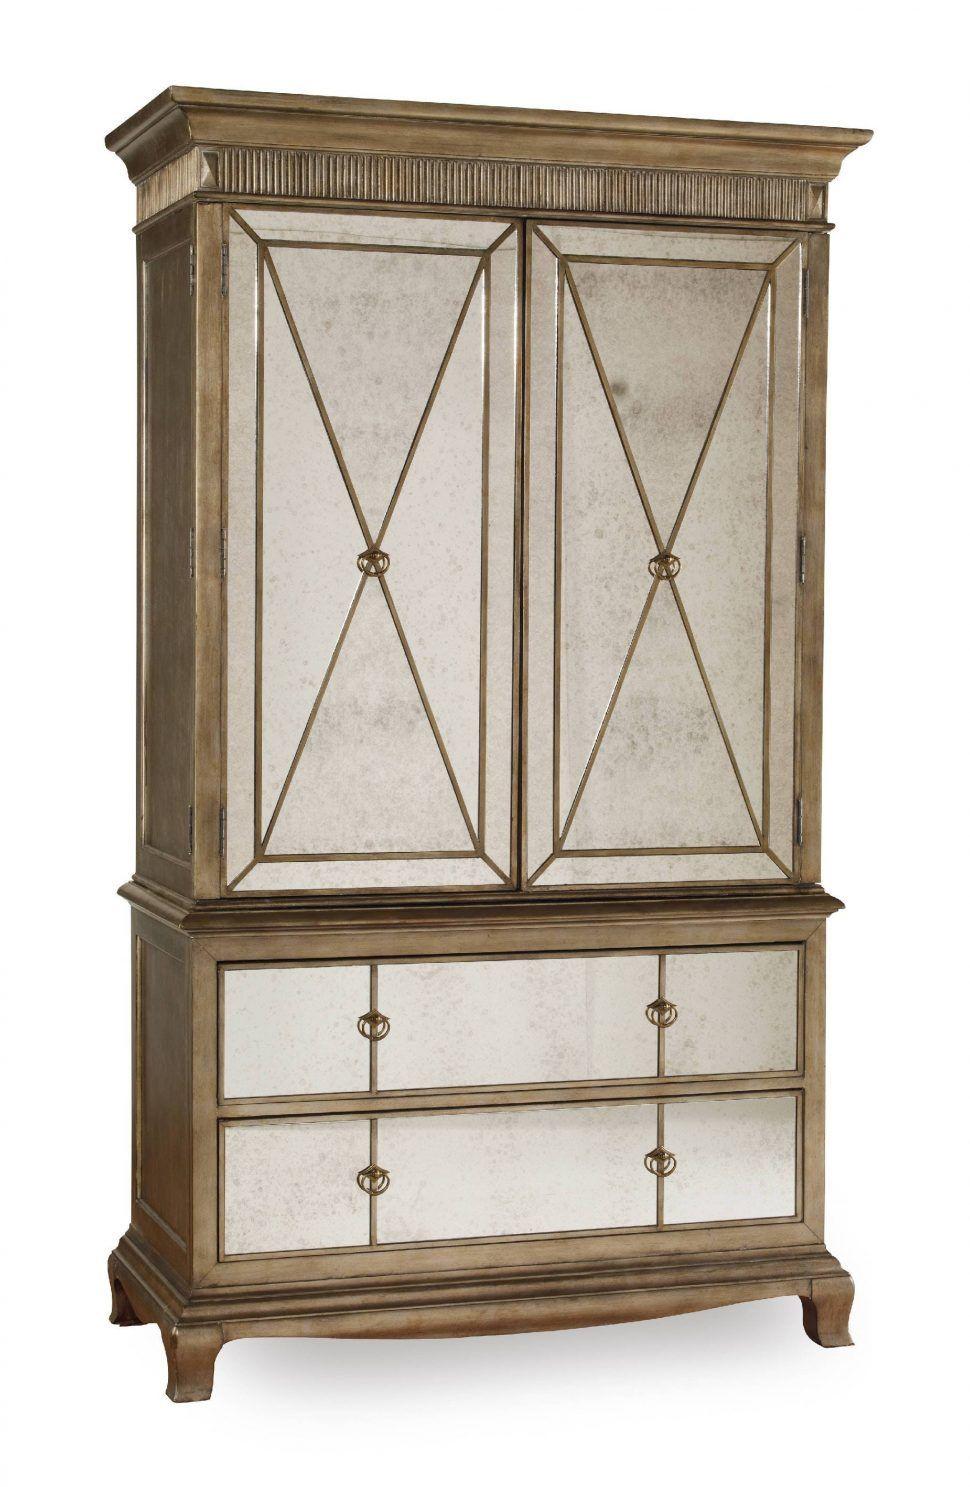 Bedroom Furniture:Wooden Classic Wardrobe Cabinet Vintage Armoire ...